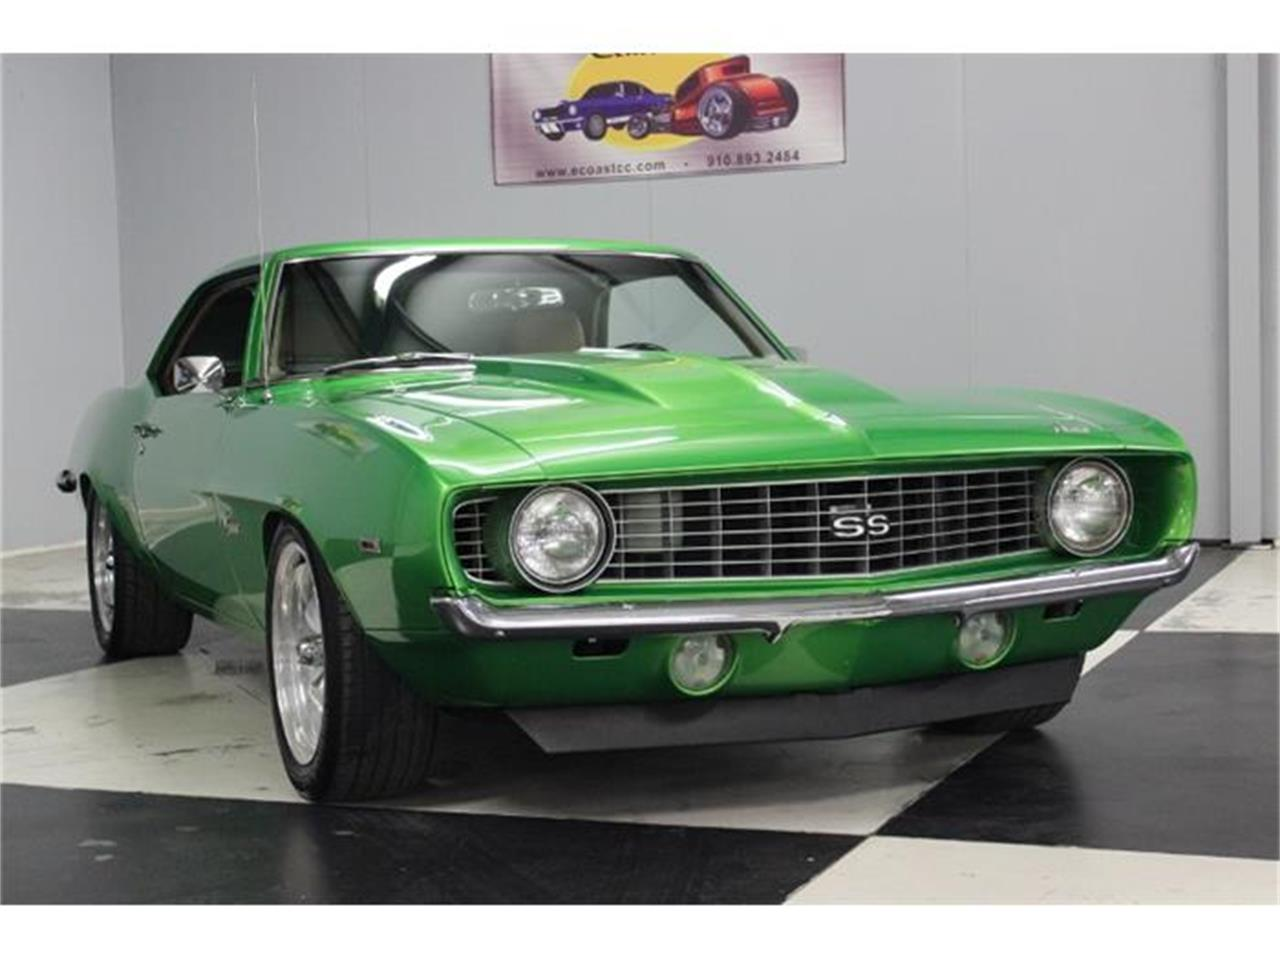 1969 Chevrolet Camaro SS for sale in Lillington, NC – photo 87